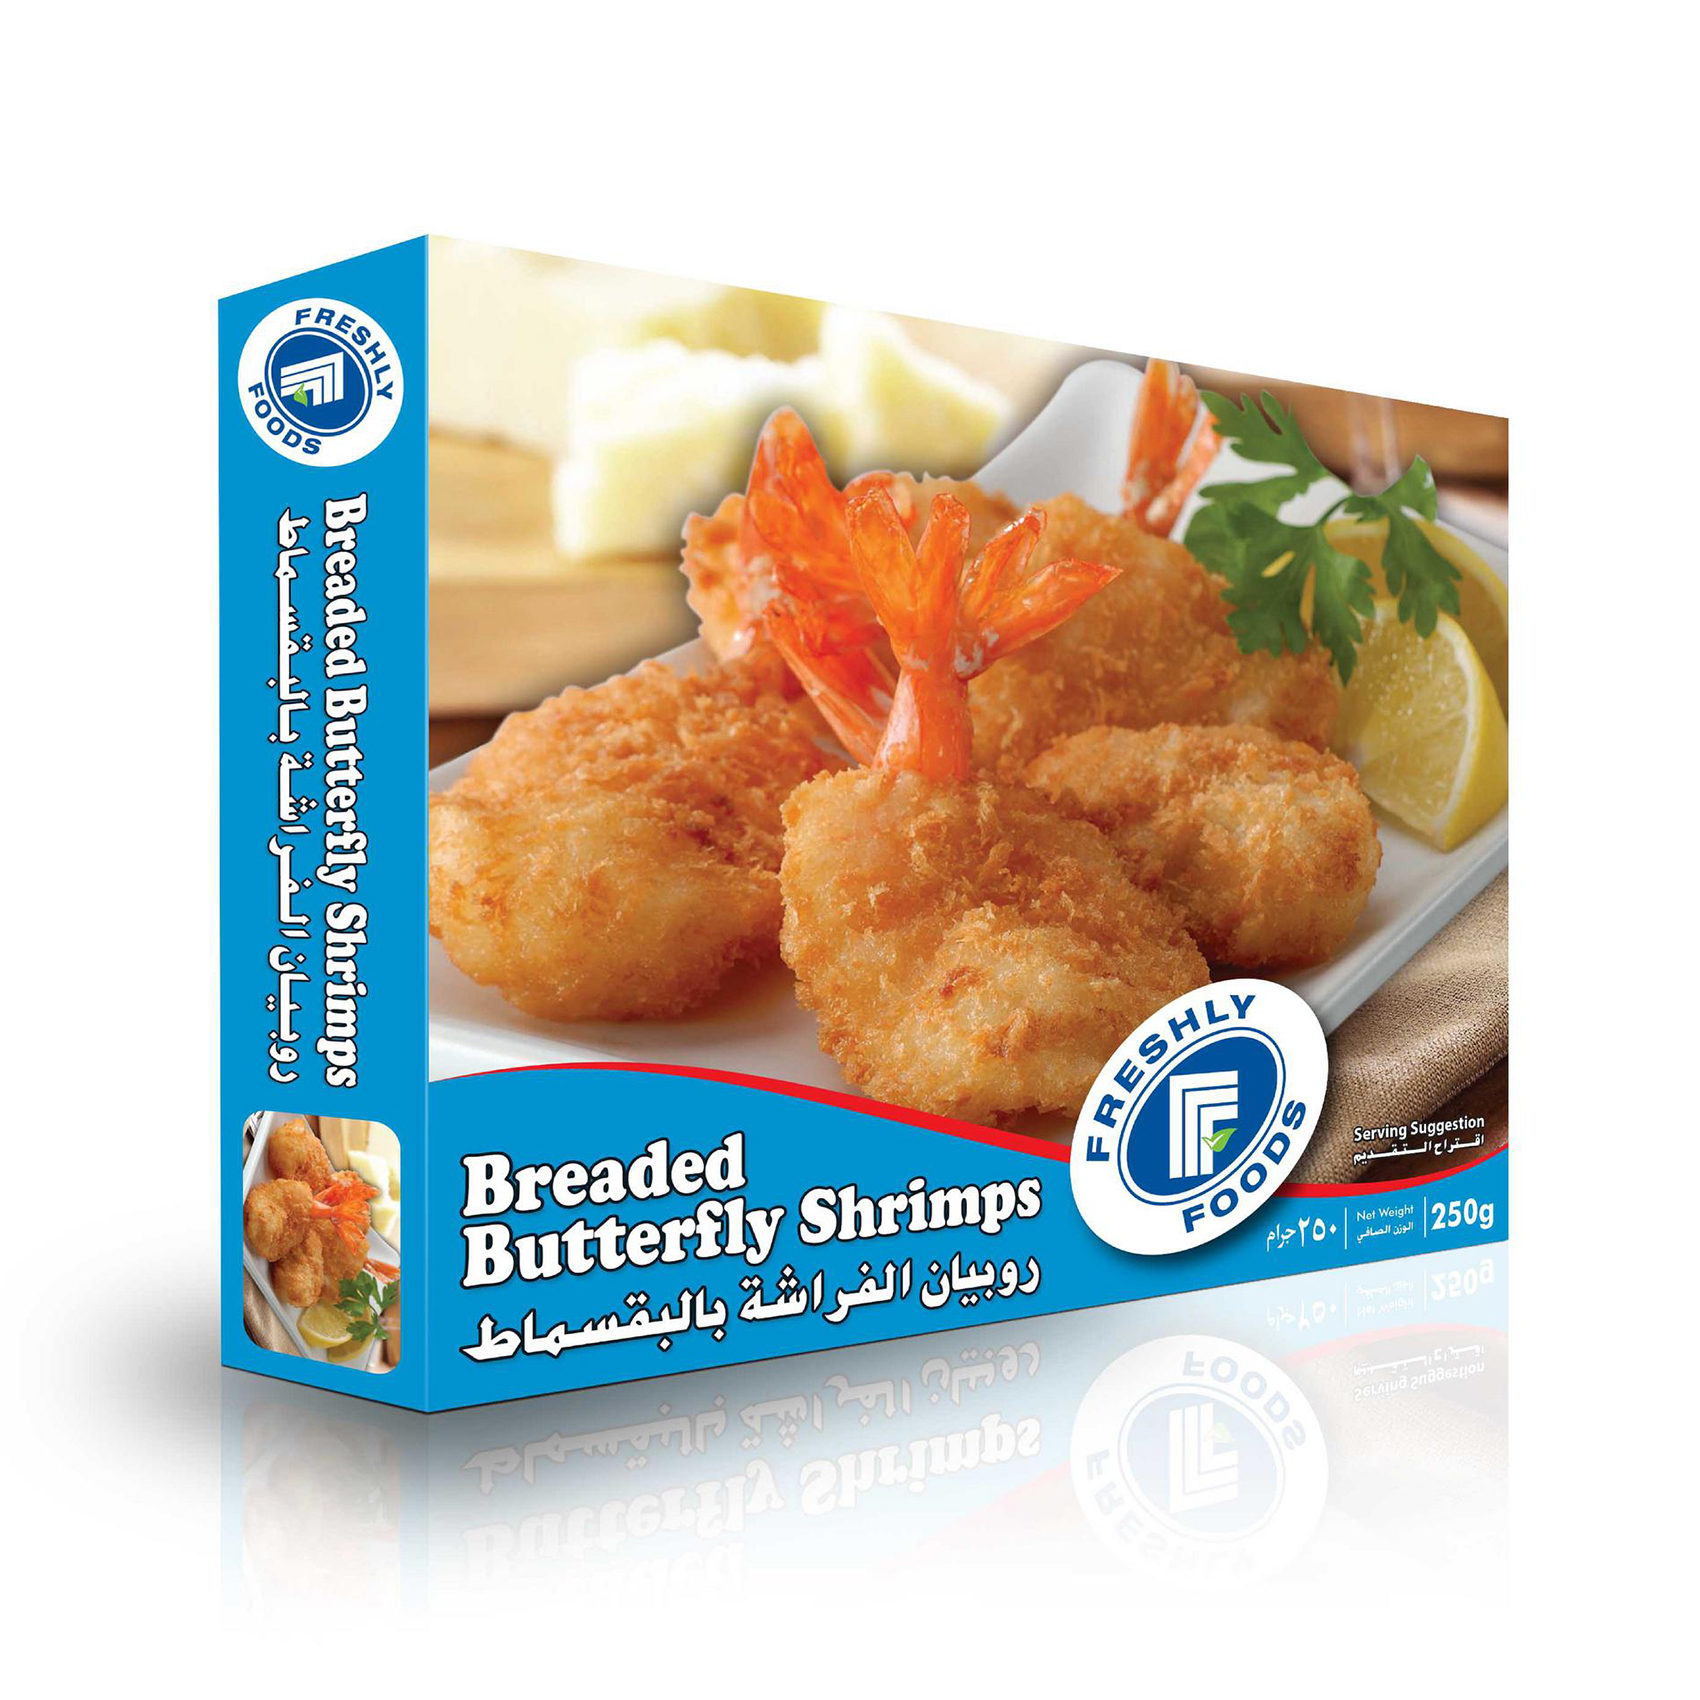 FFF BREADED B/FLY SHRIMPS 25OG